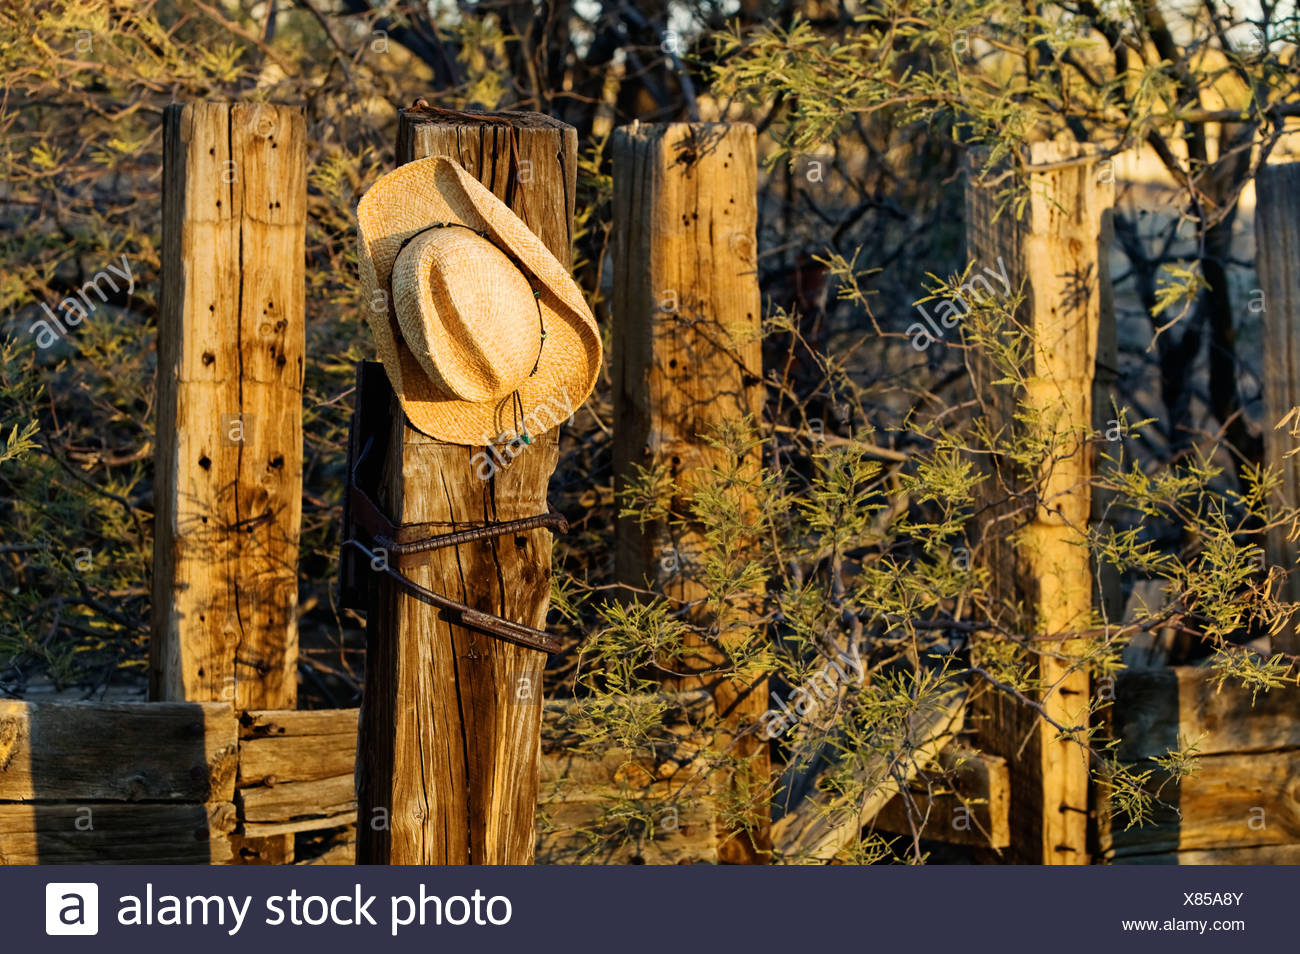 57ece83b6f5 Straw cowboy hat hanging on an old wooden post Stock Photo ...